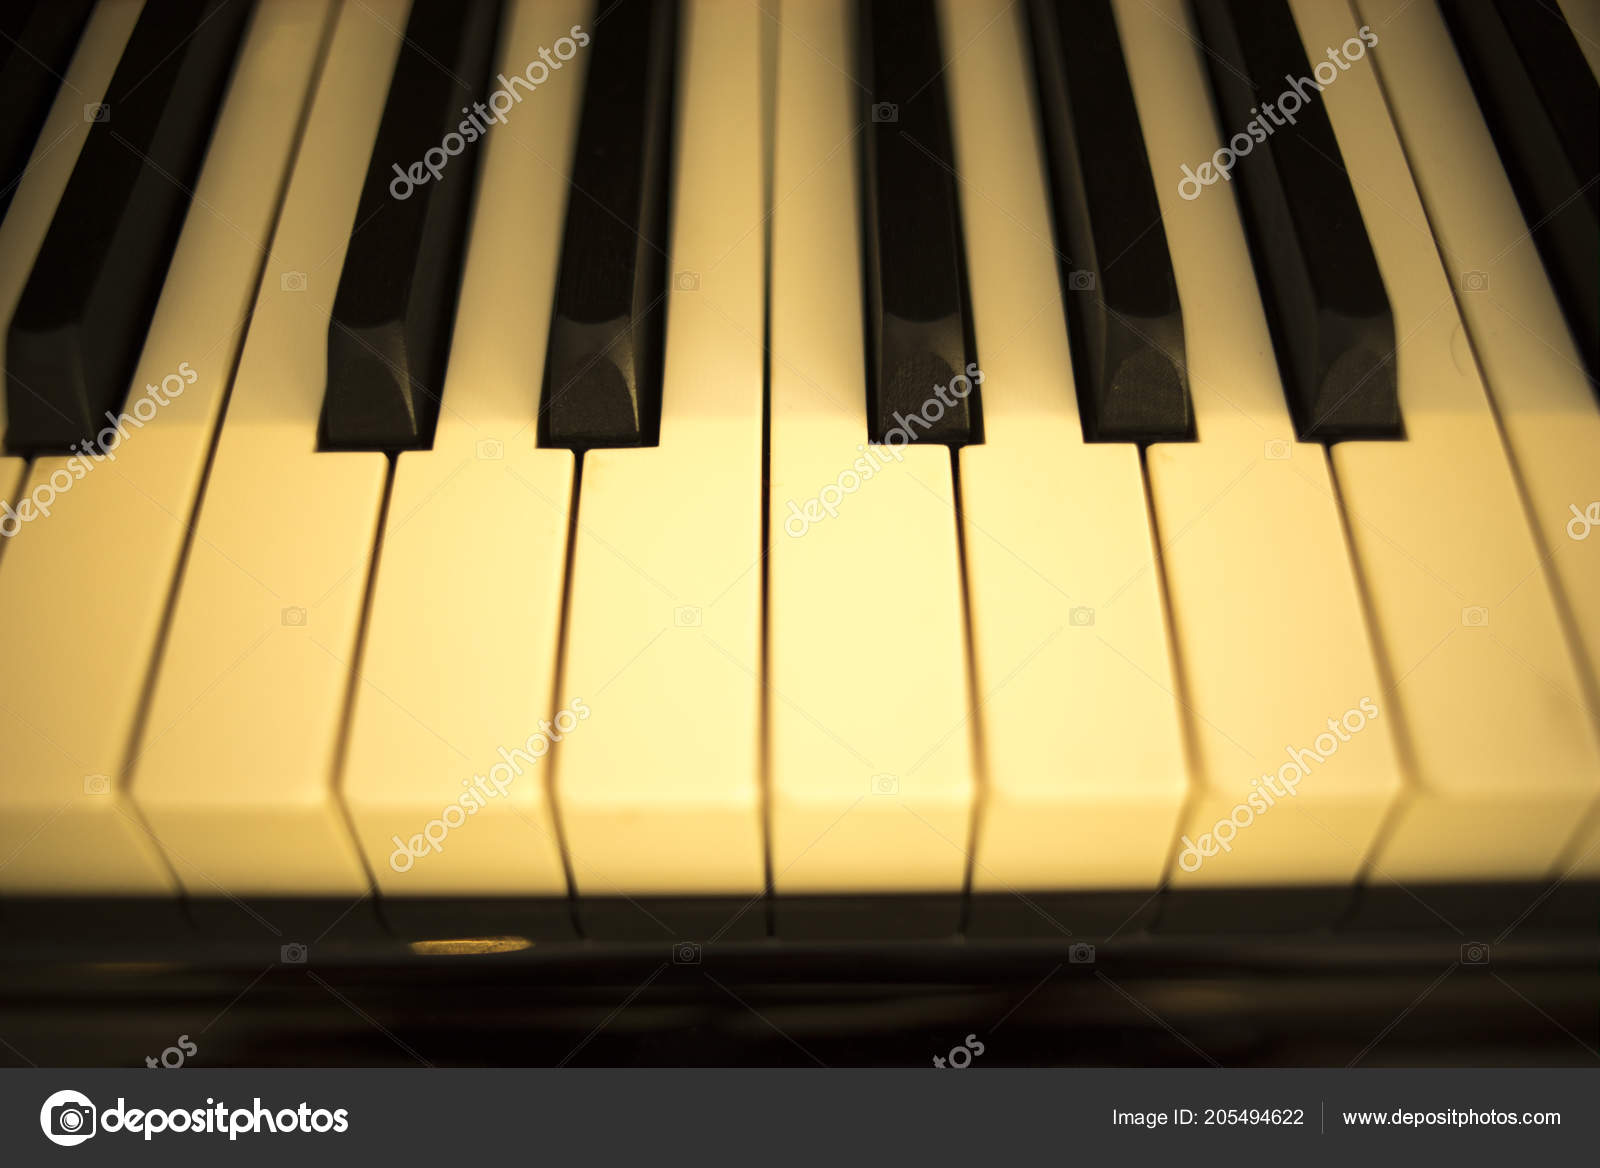 how many keys does a concert grand piano have